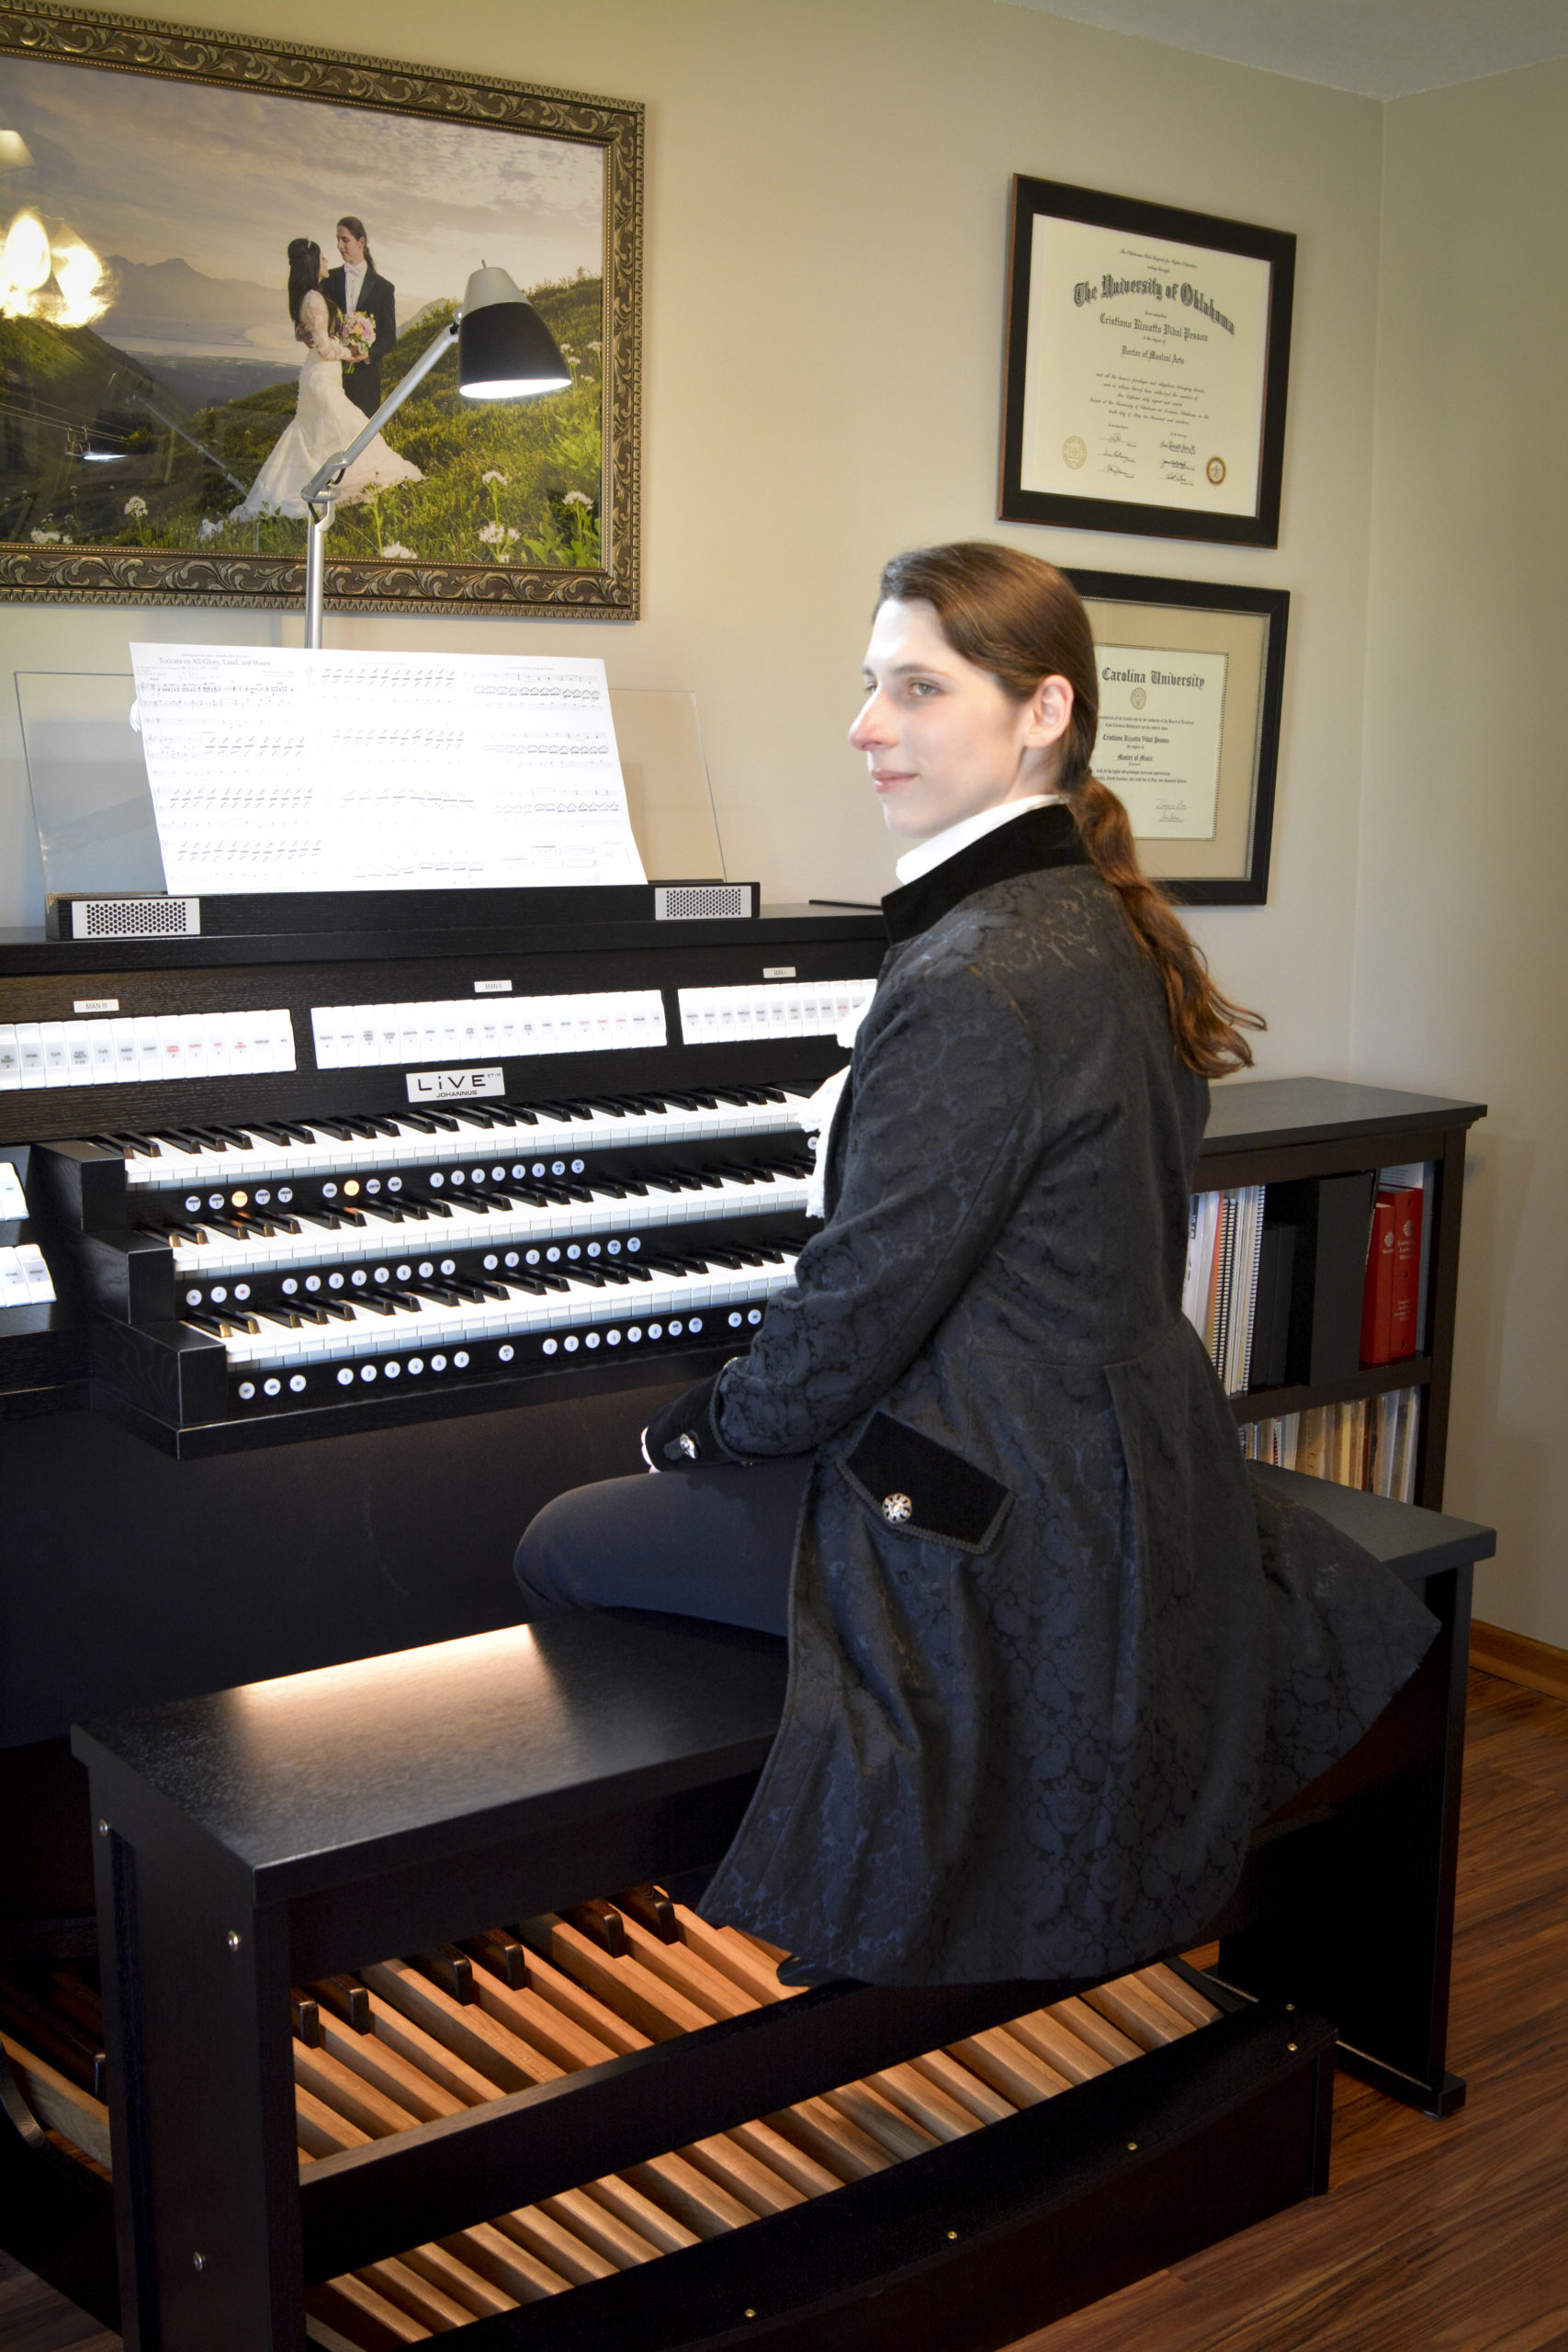 Latvian Brazilian transgender organist and composer Dr. Kris Rizzotto at their home organ